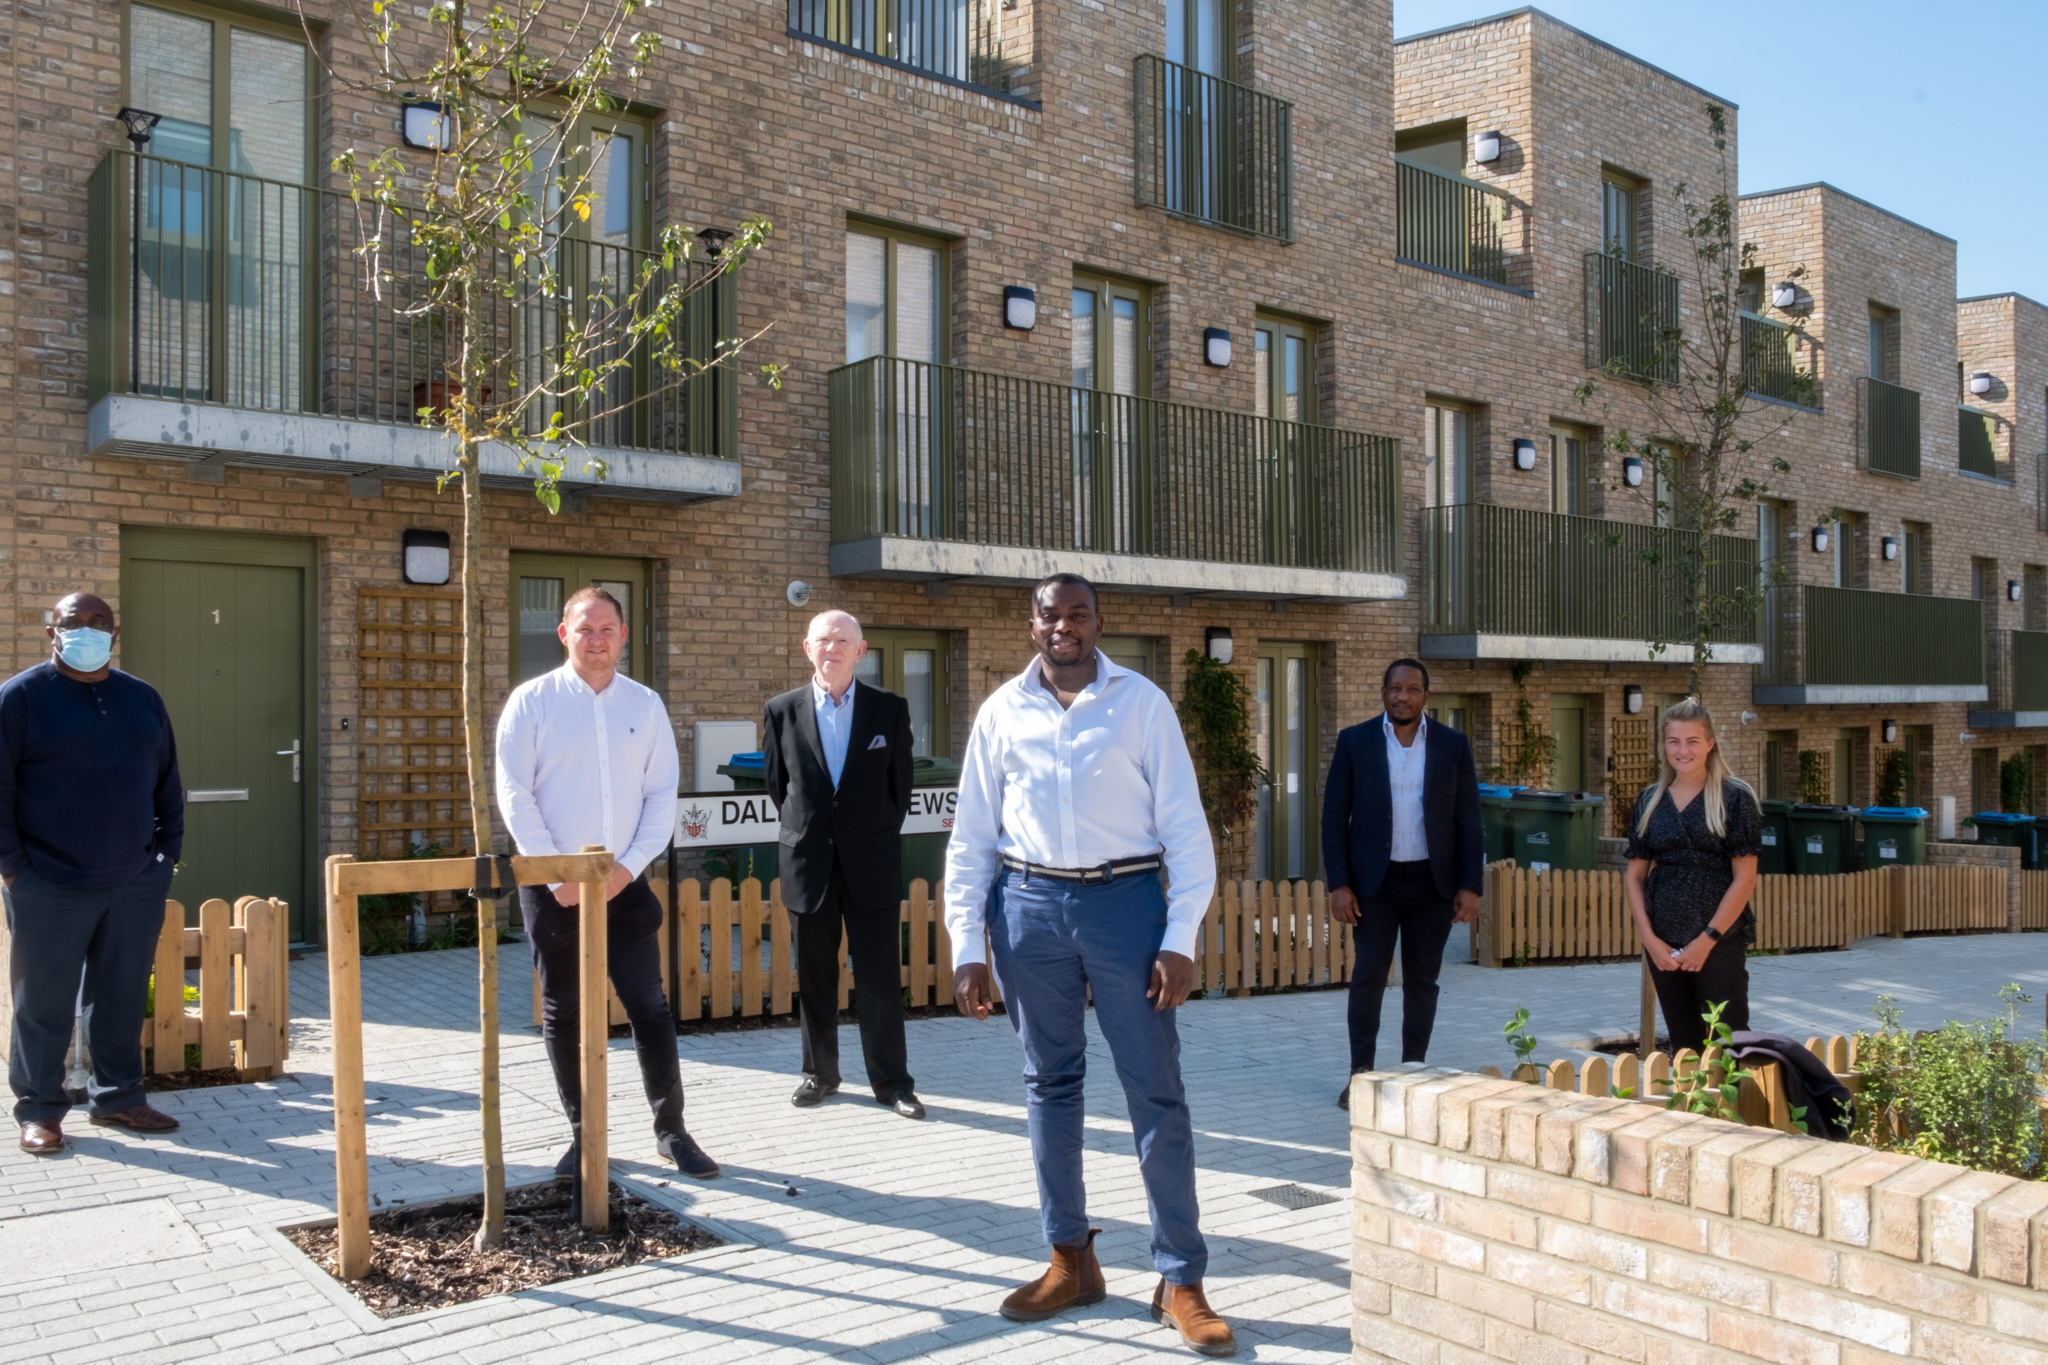 Cllrs Thorpe and Okereke visit Woodpecker Gardens